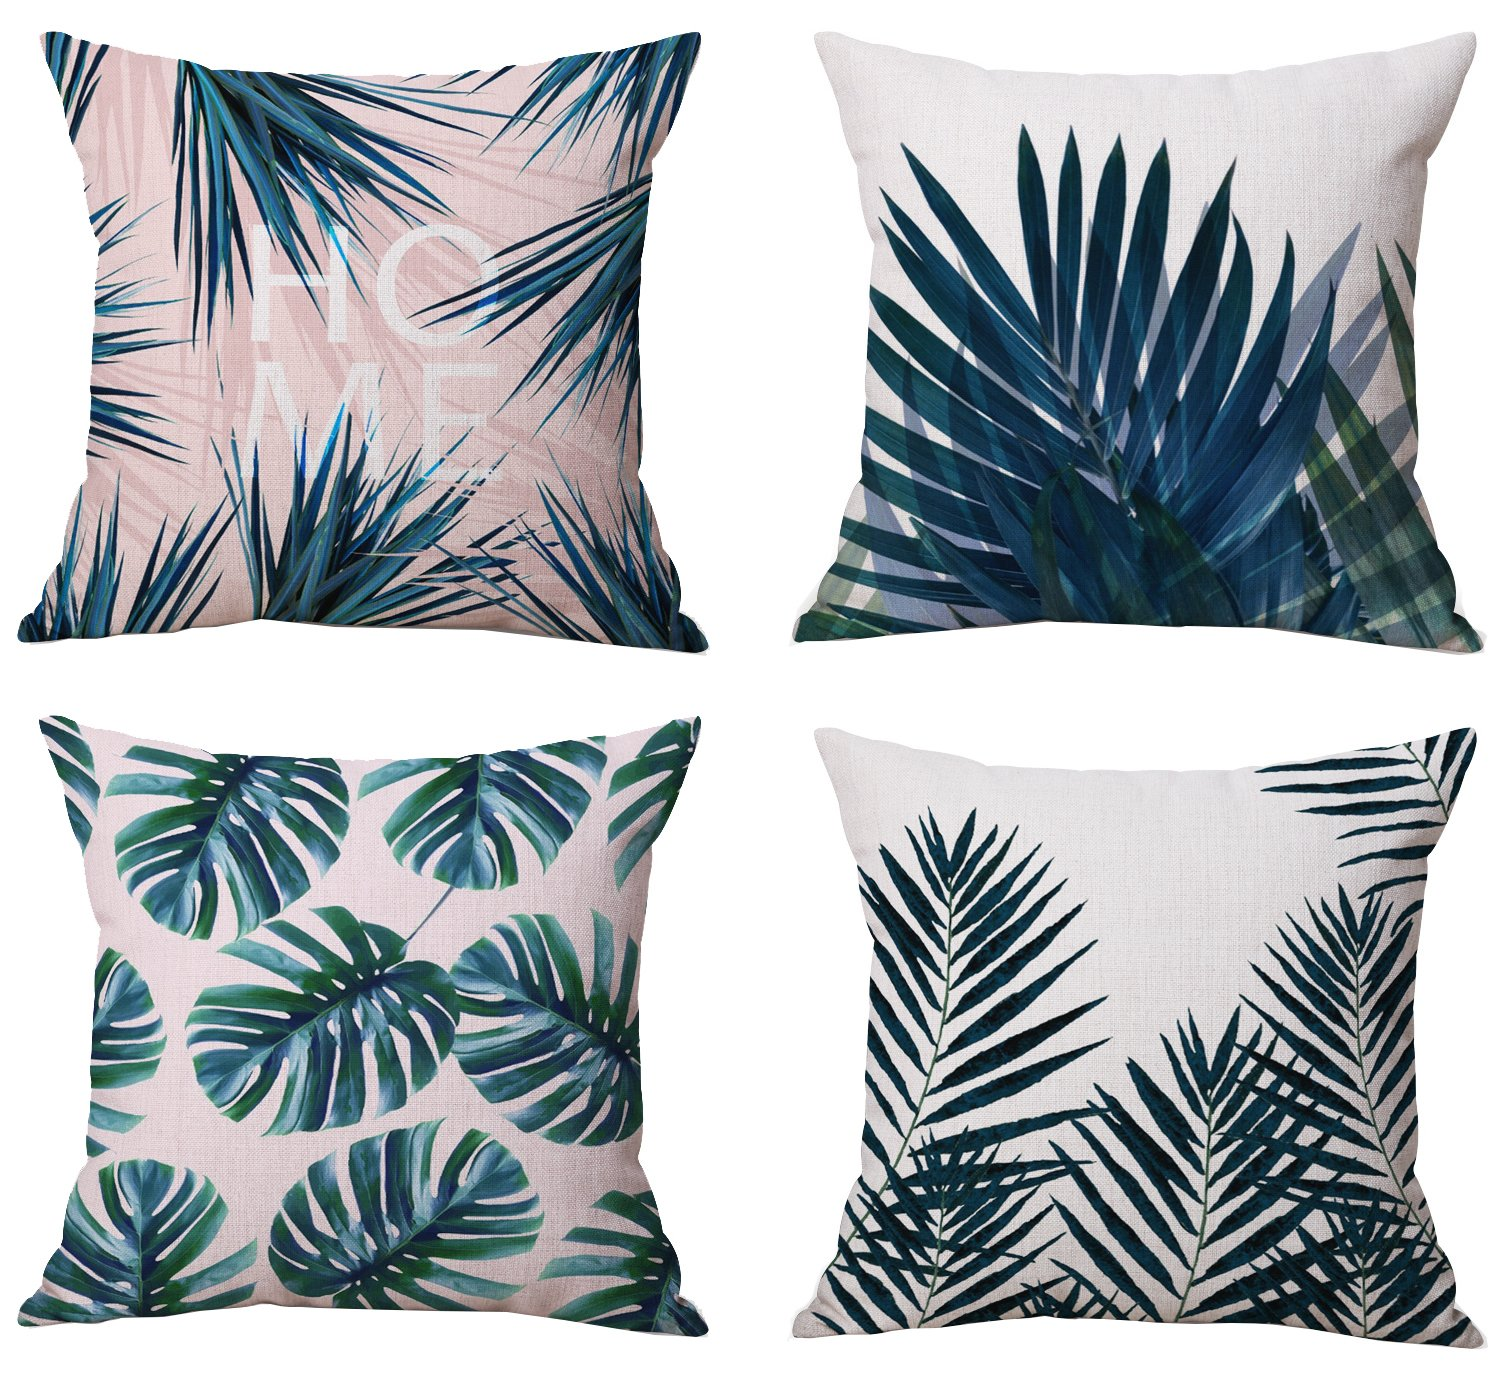 Modern Tropical Leaves Series Cotton & Linen Burlap Square Throw Pillow Covers